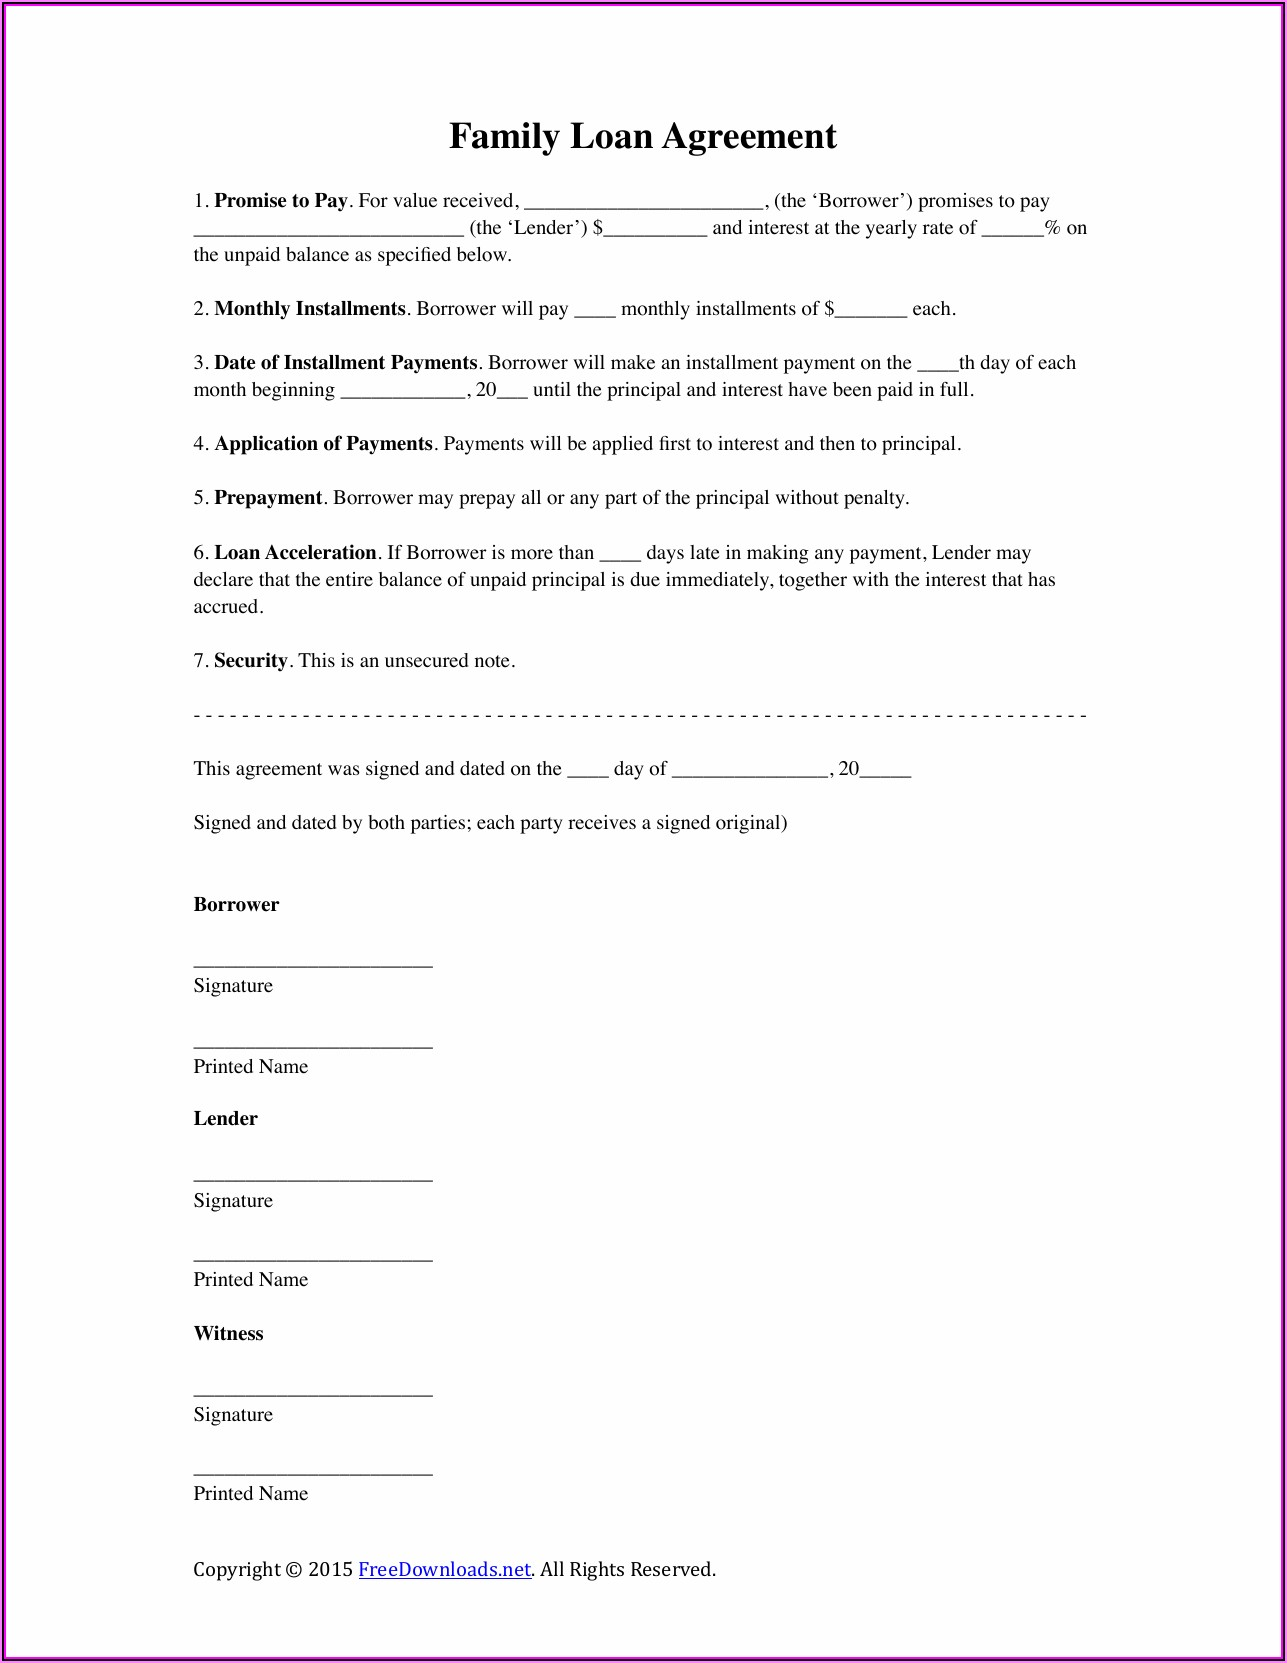 Free Loan Agreement Template Between Family Members